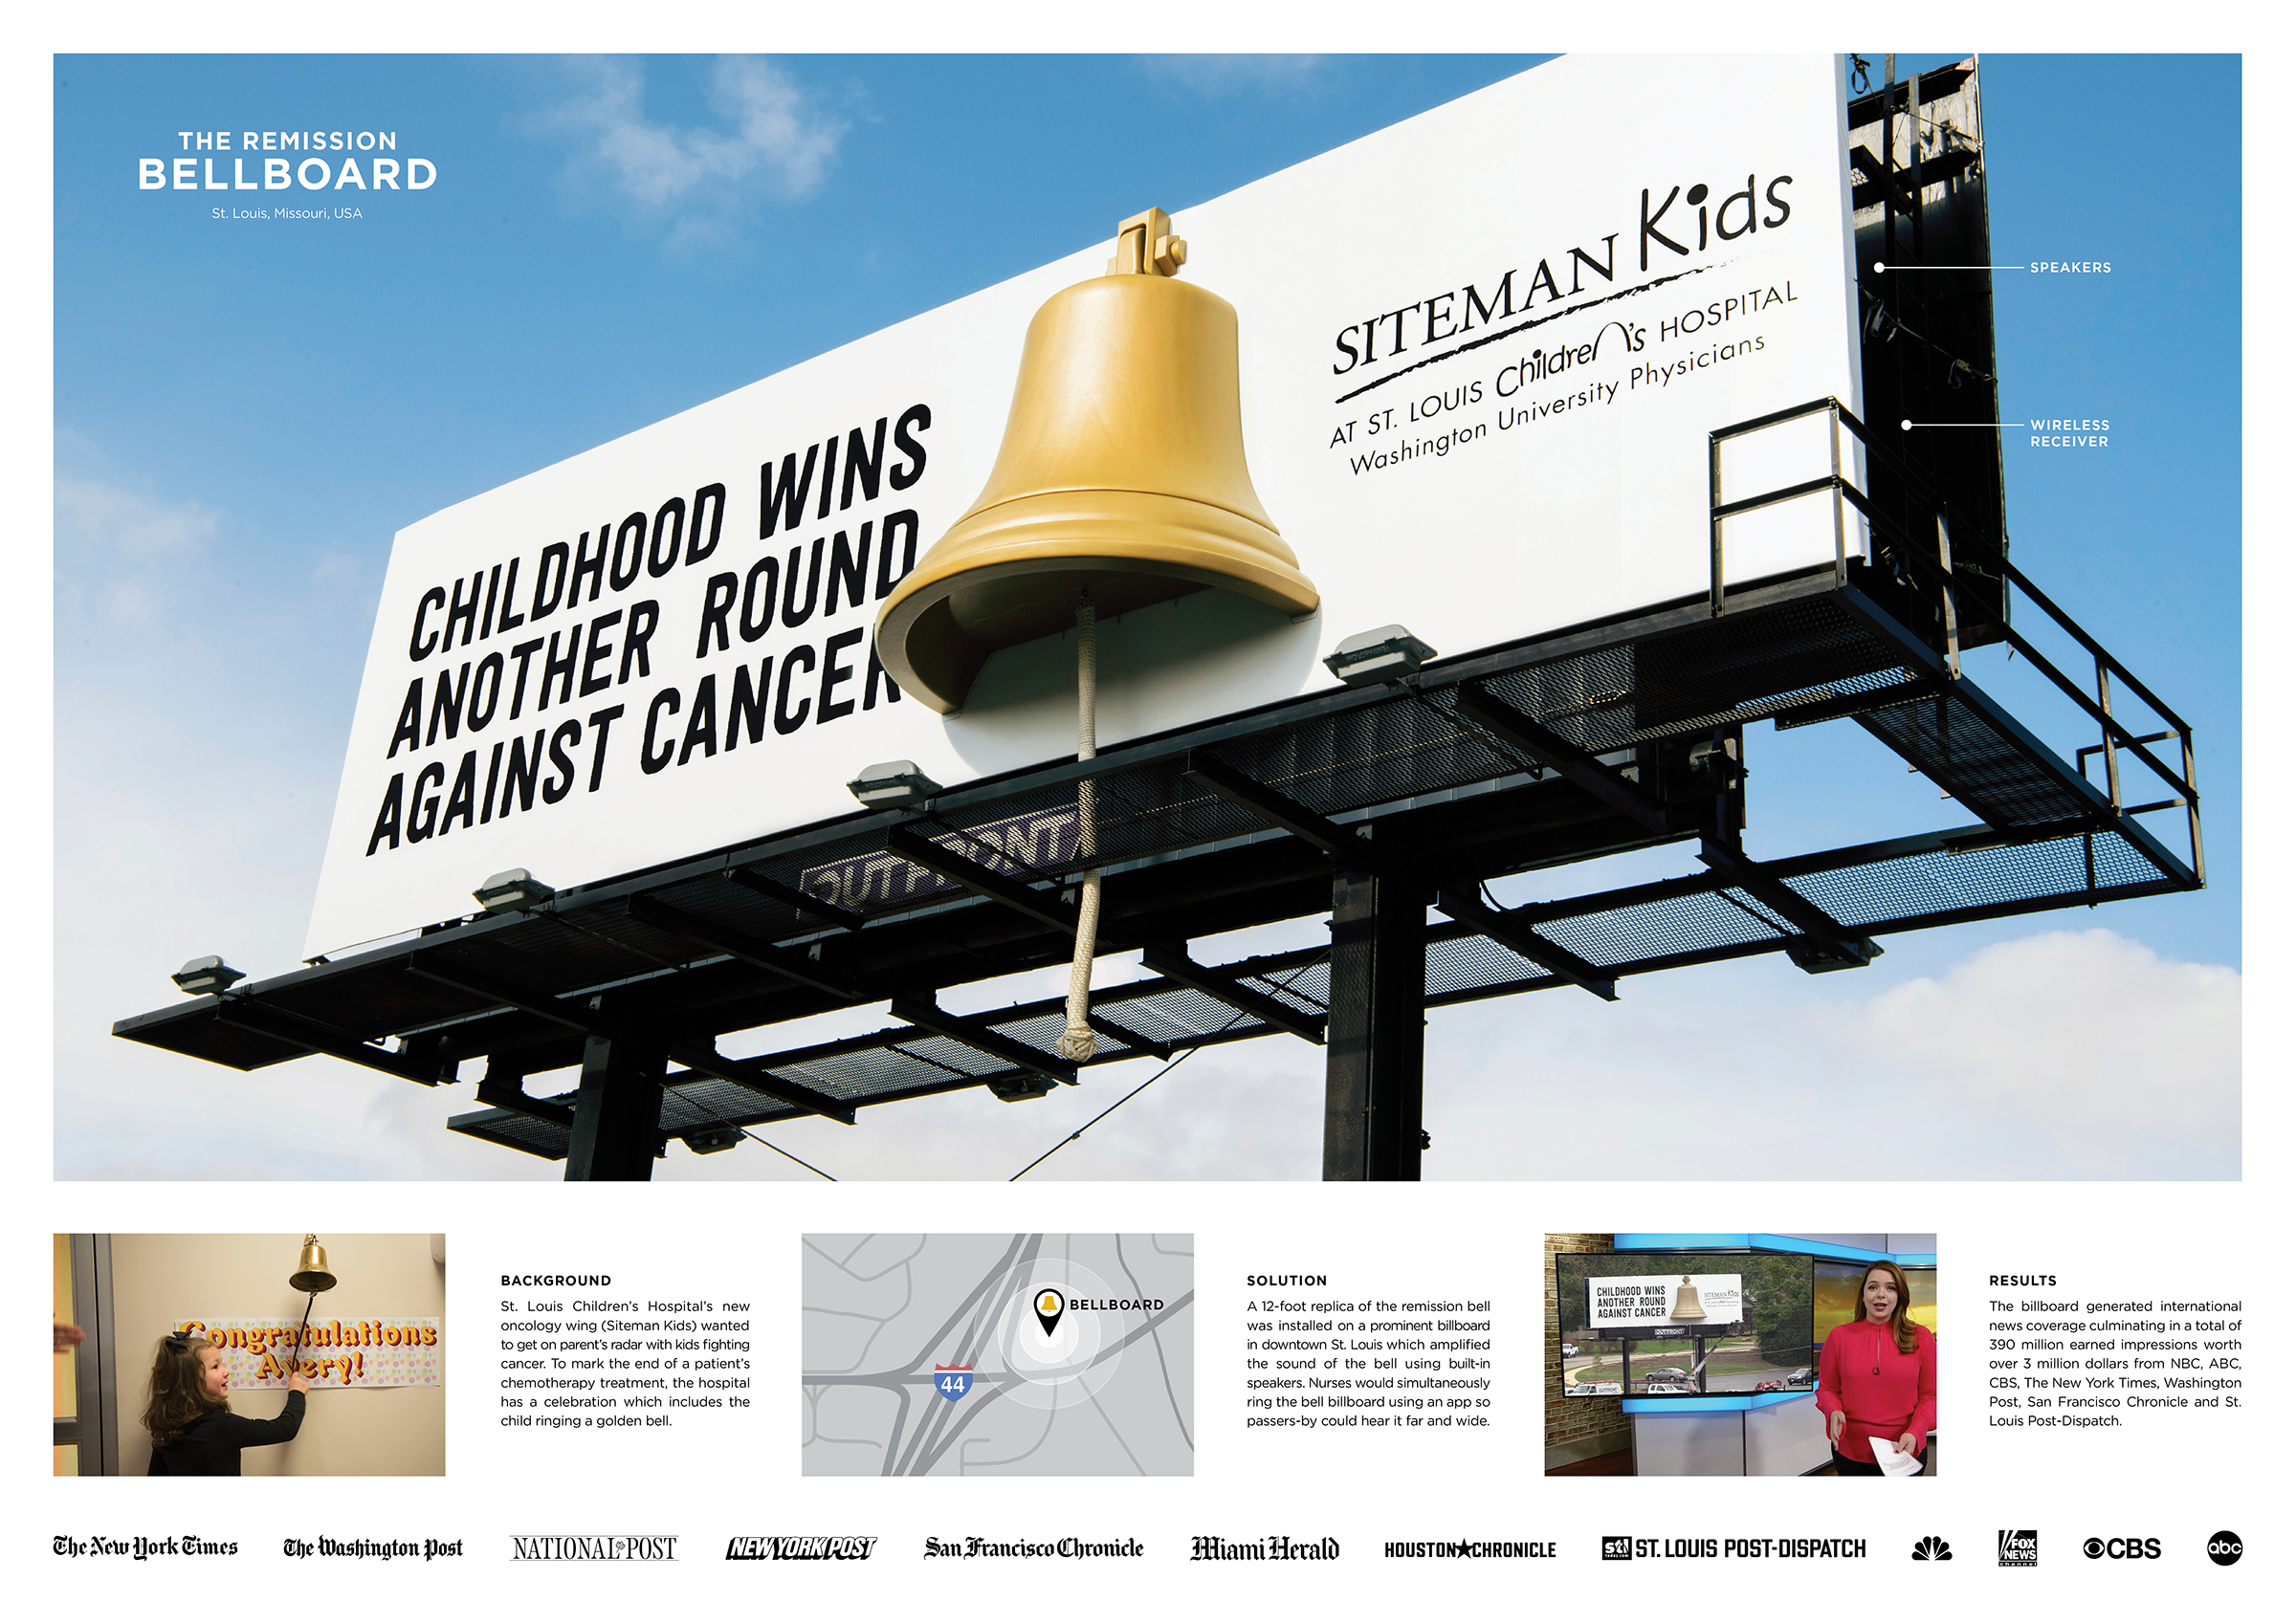 St. Louis Children's Hospital - Remission Bell